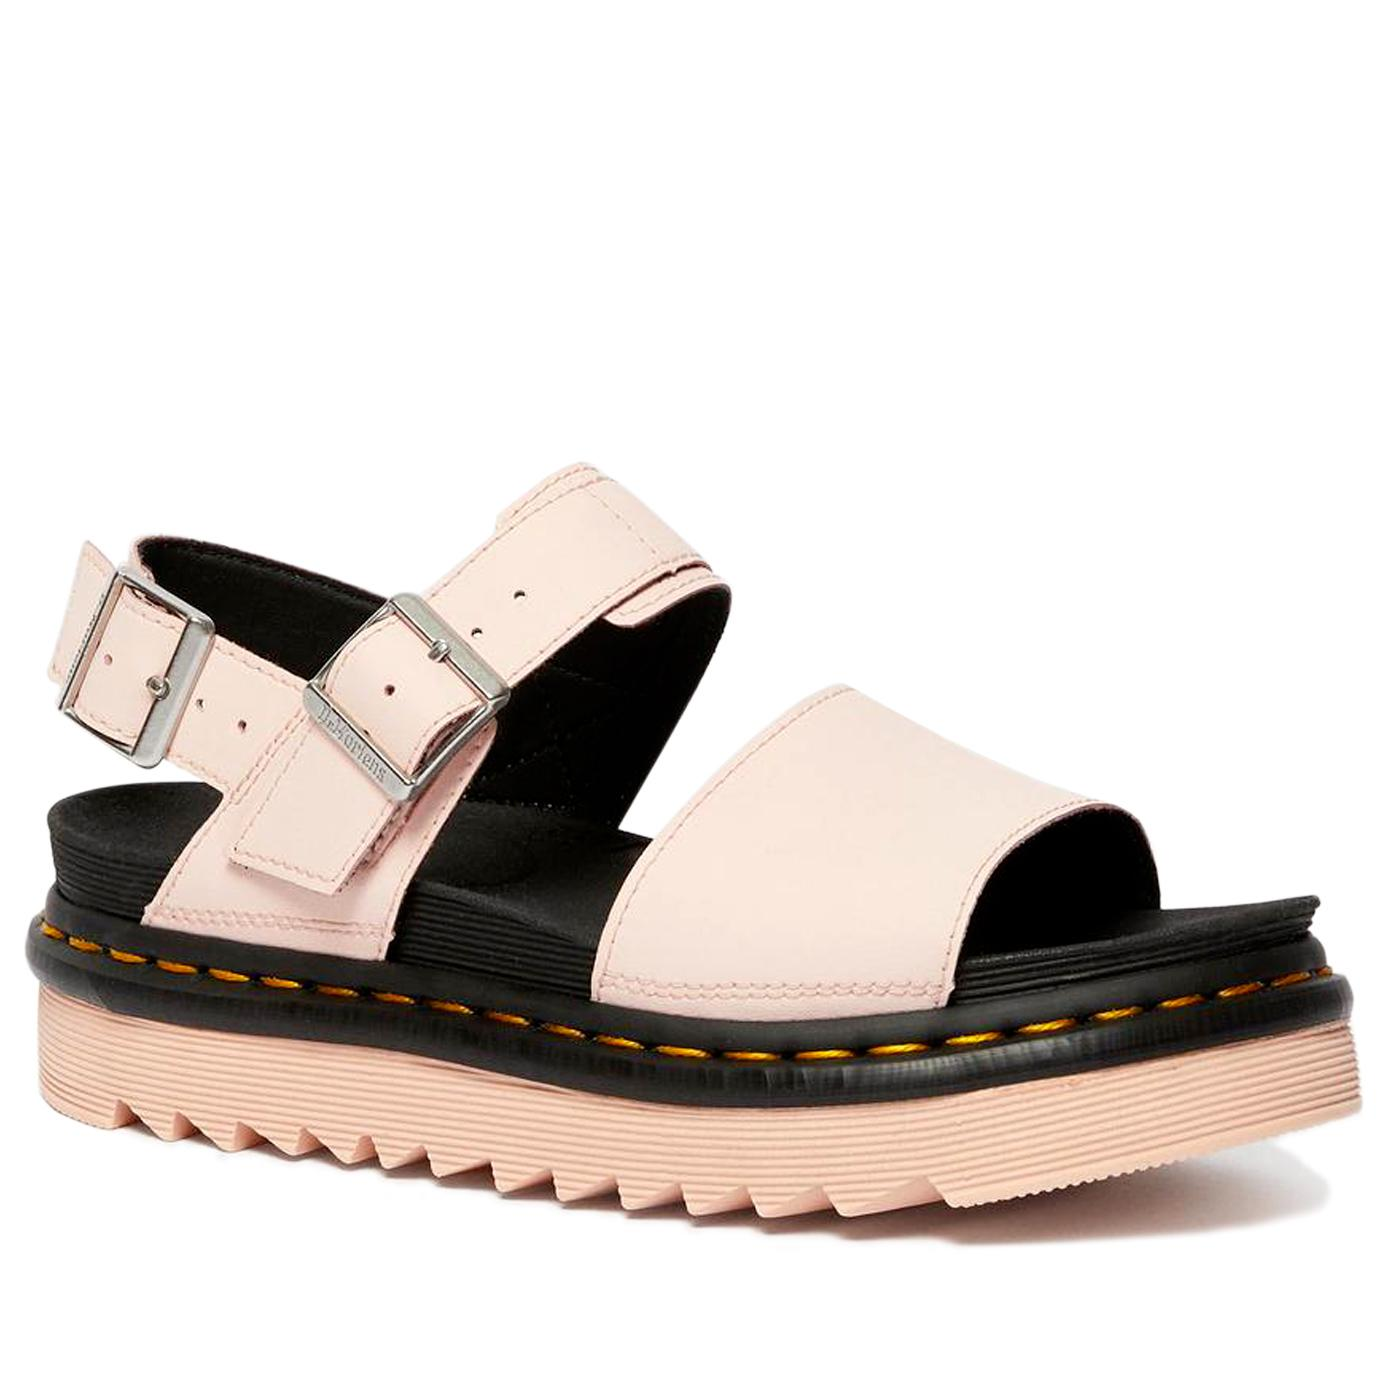 Voss DR MARTENS Womens Hydro Leather Sandals (PS)